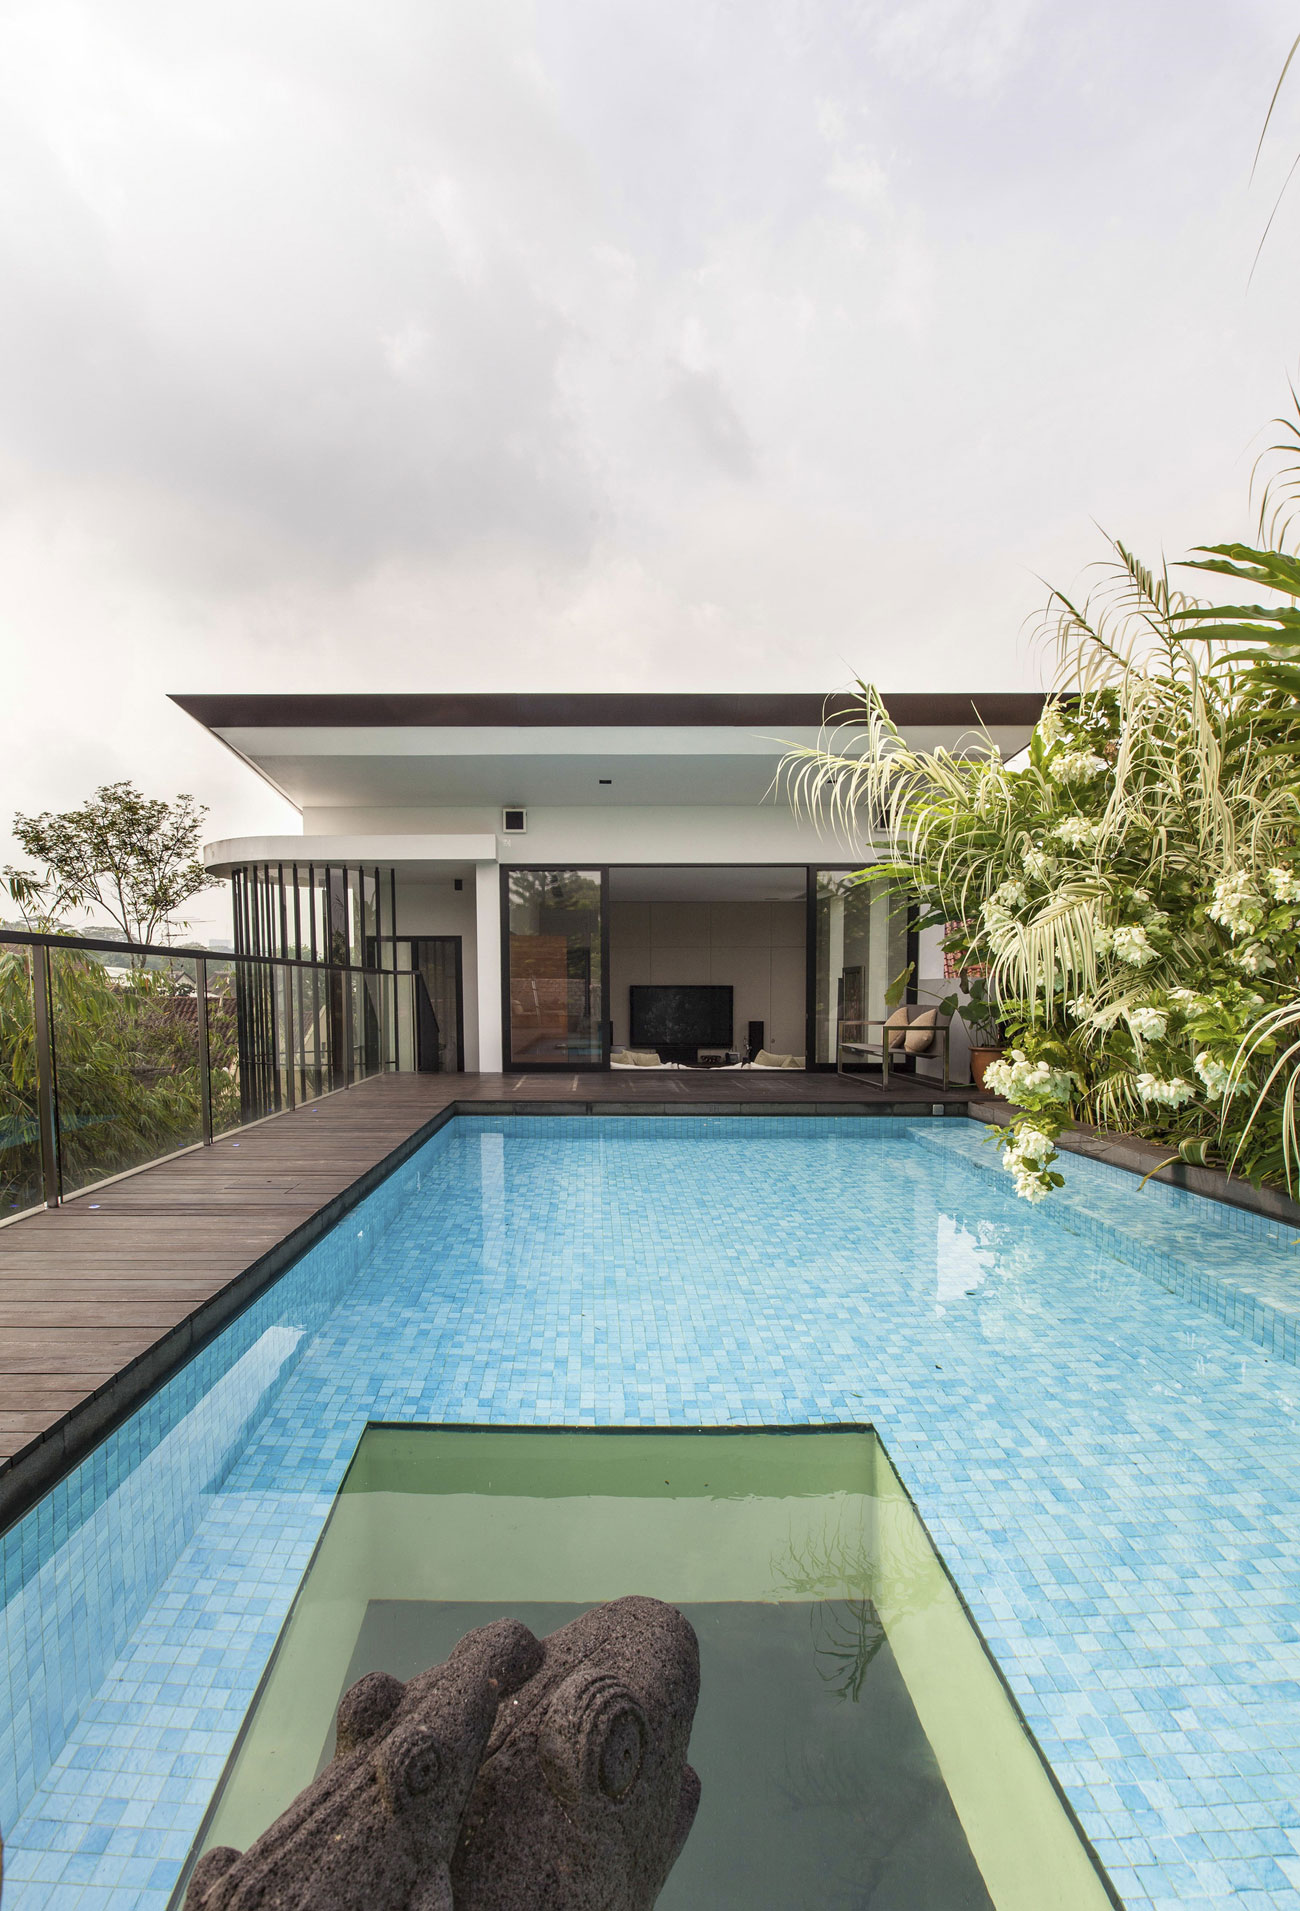 16 Gorgeous Singapore Homes You Need To See To Believe Thesmartlocal